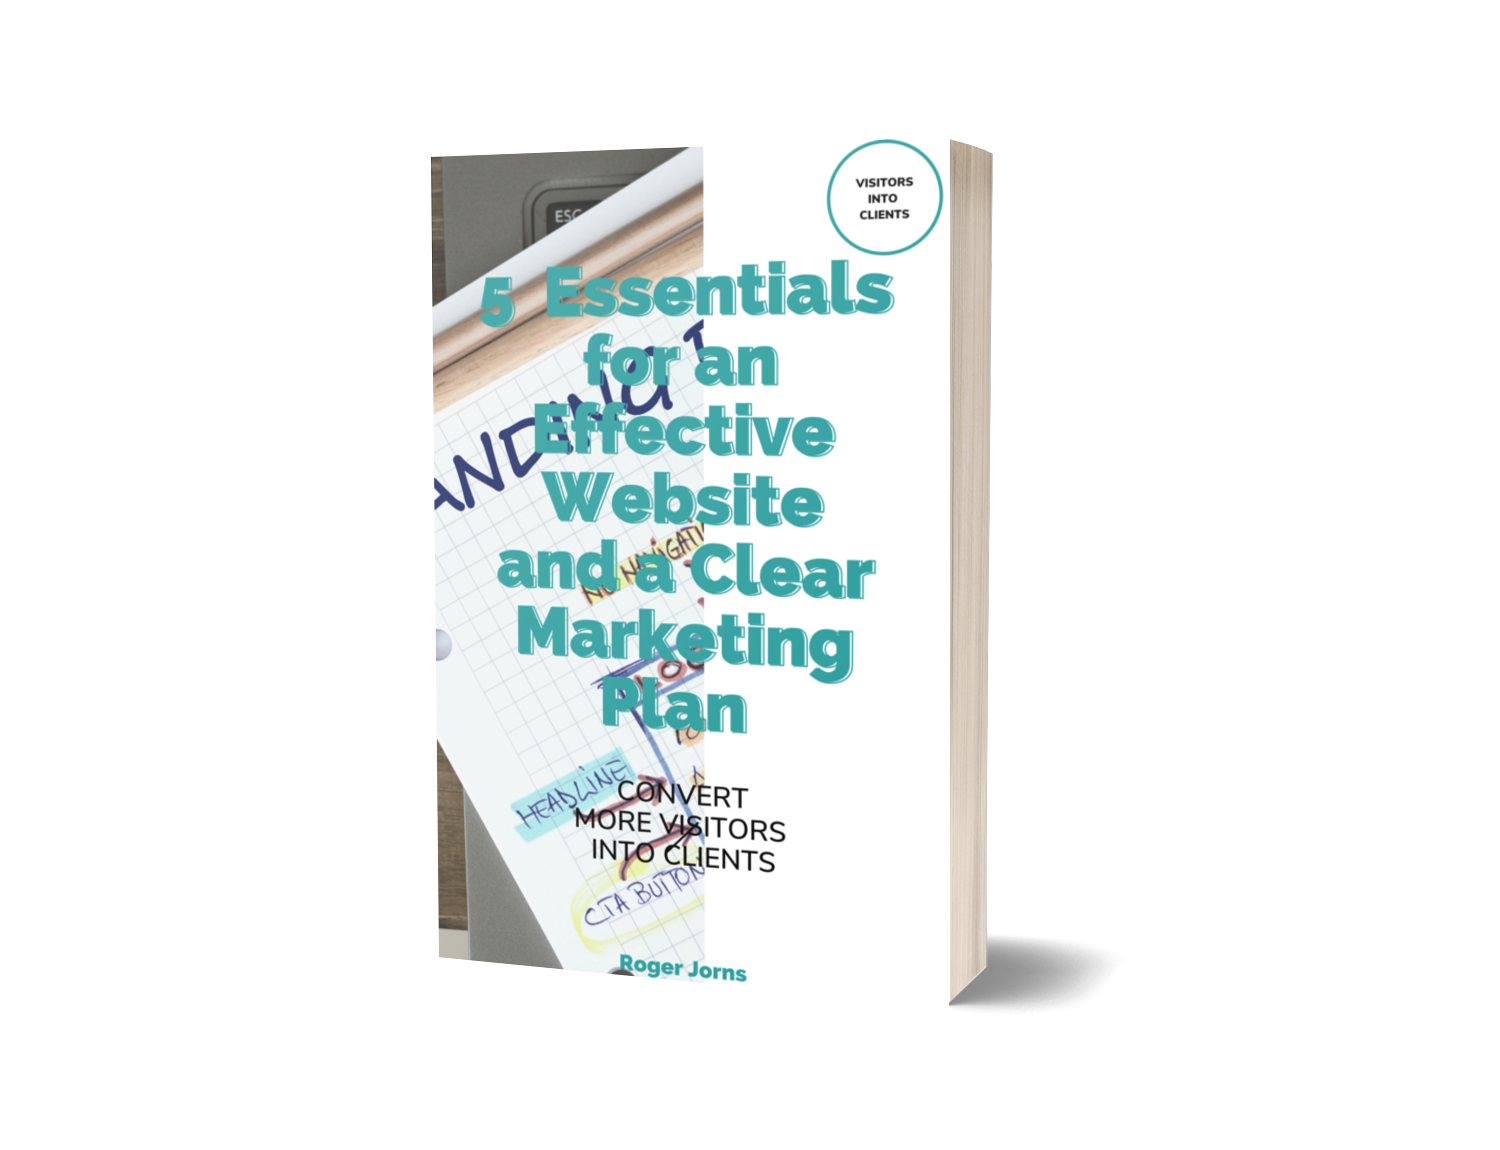 Cover of 5 Essentials for an Effective website and Clear Marketing Plan